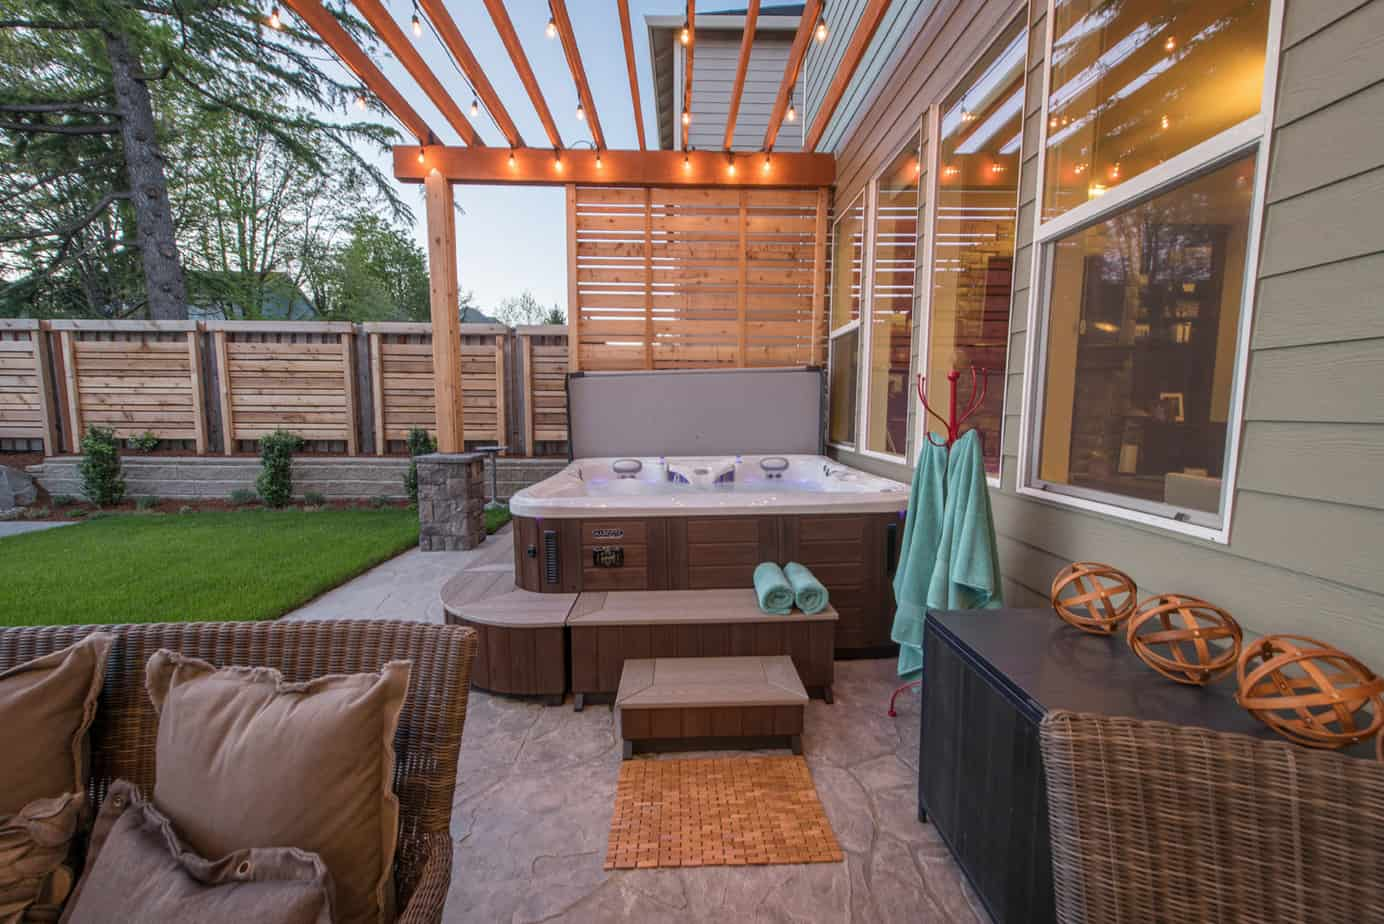 A garden hot tub with privacy